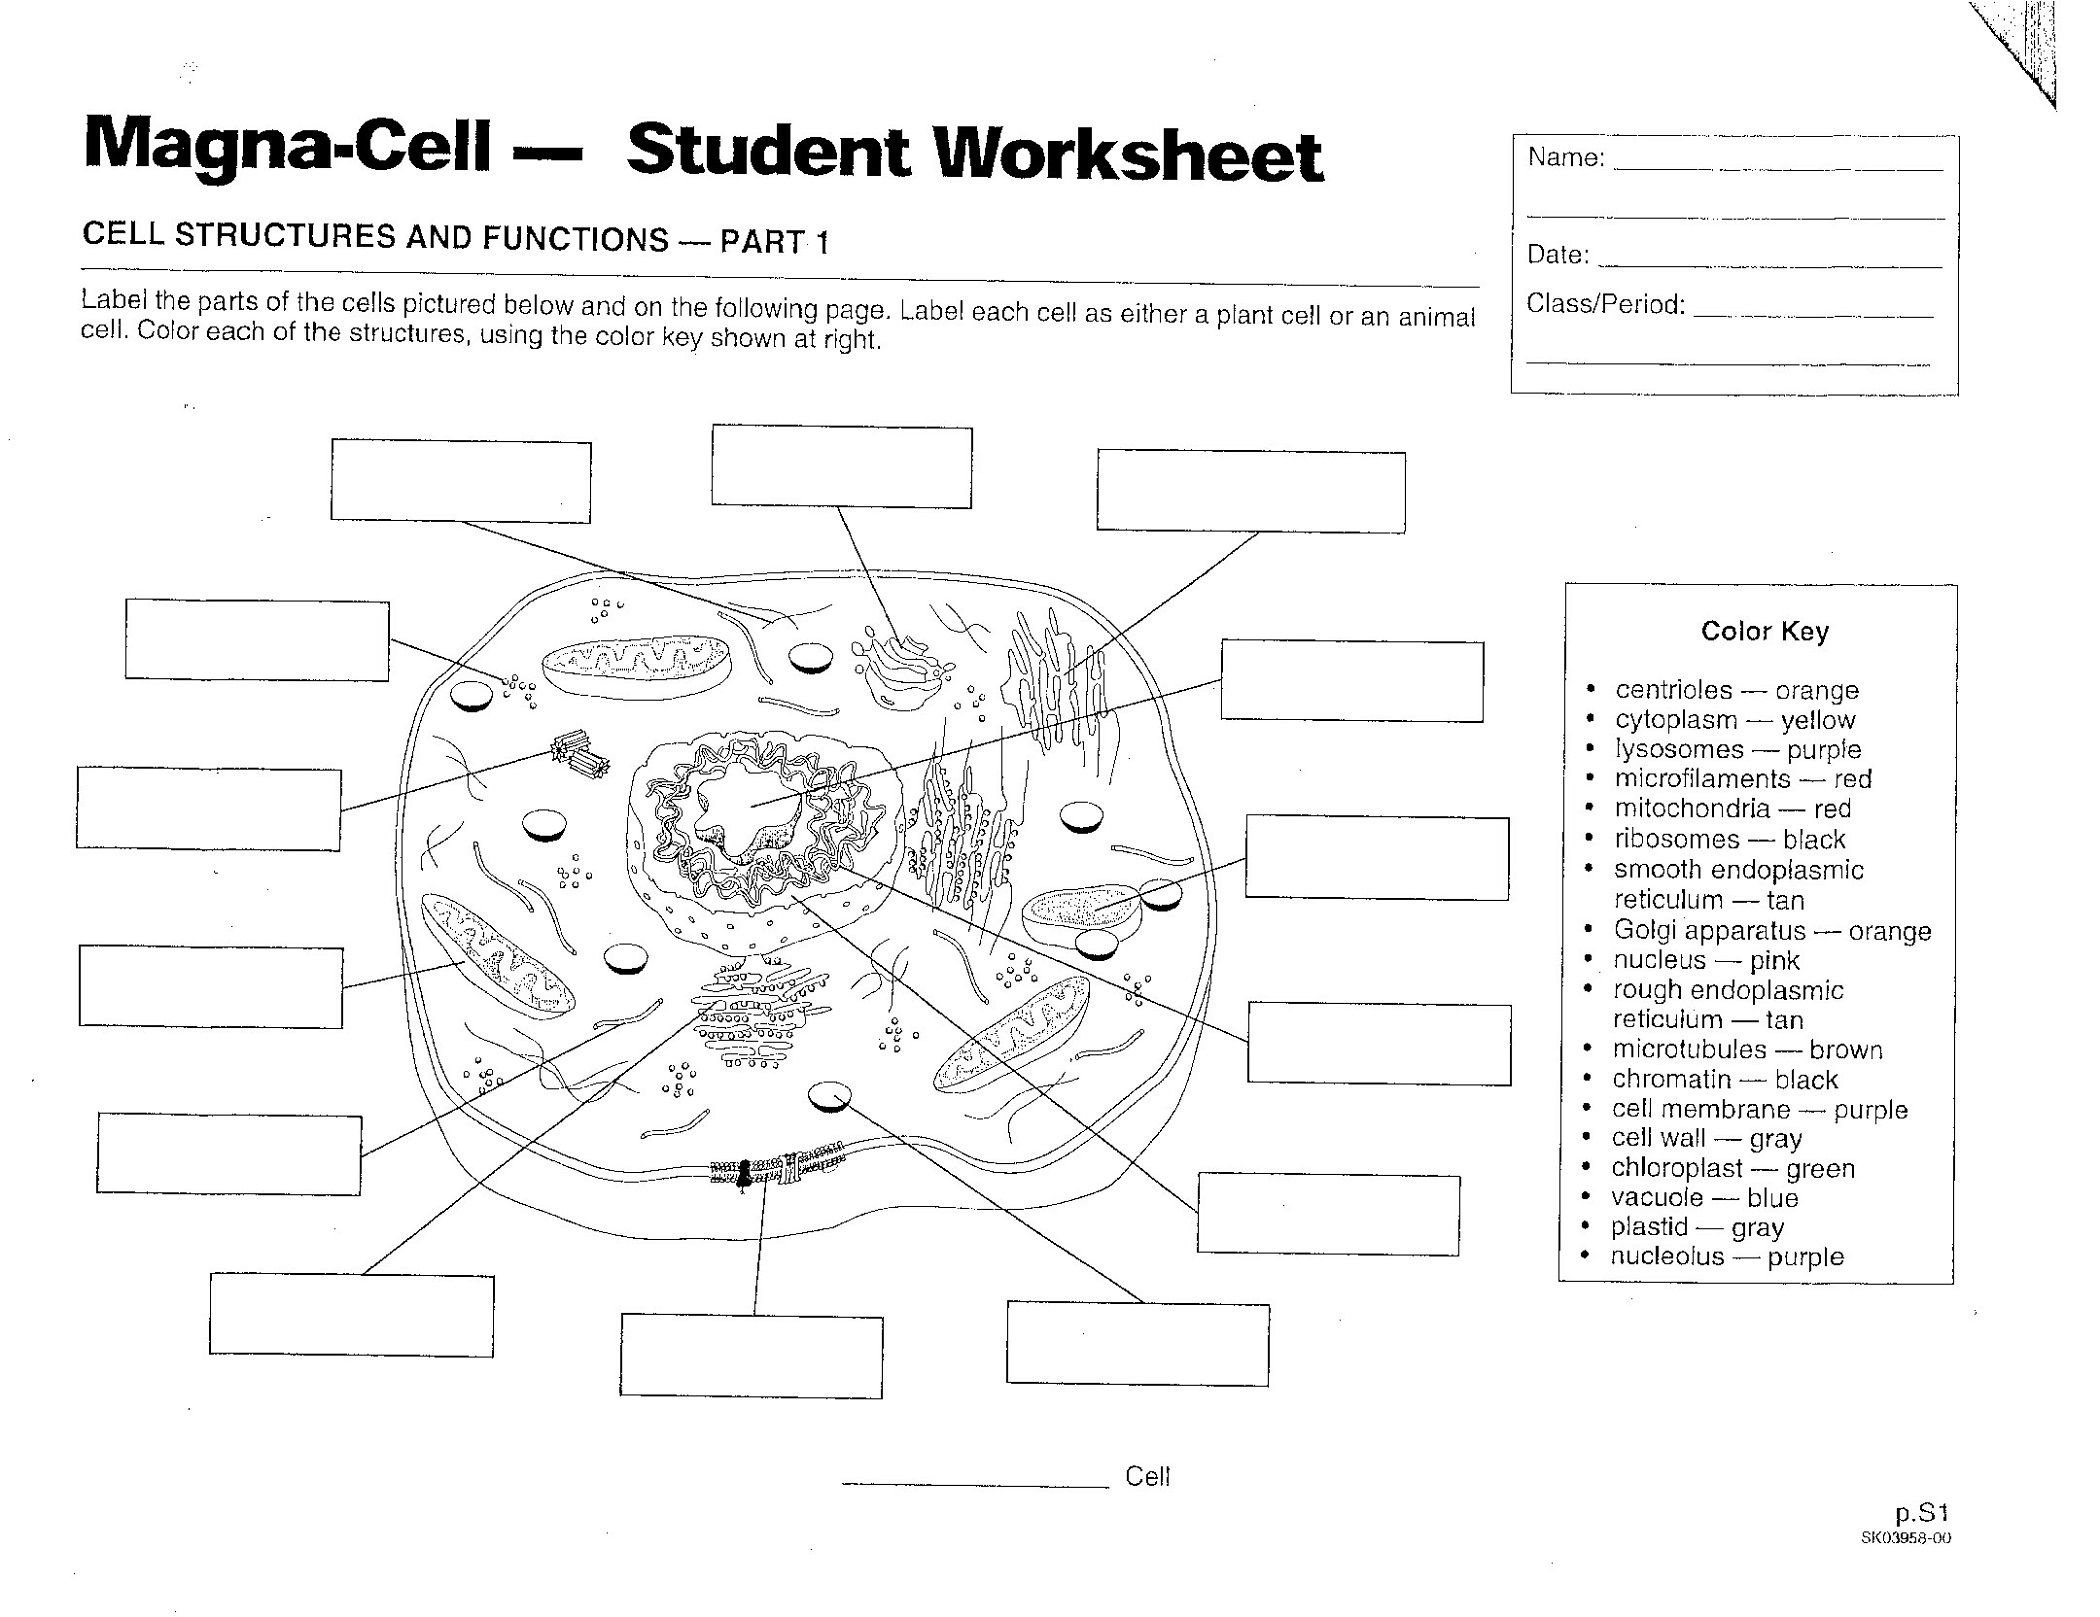 Plant And Animal Cell Diagram Worksheet | Printable Diagram - Free Printable Cell Worksheets